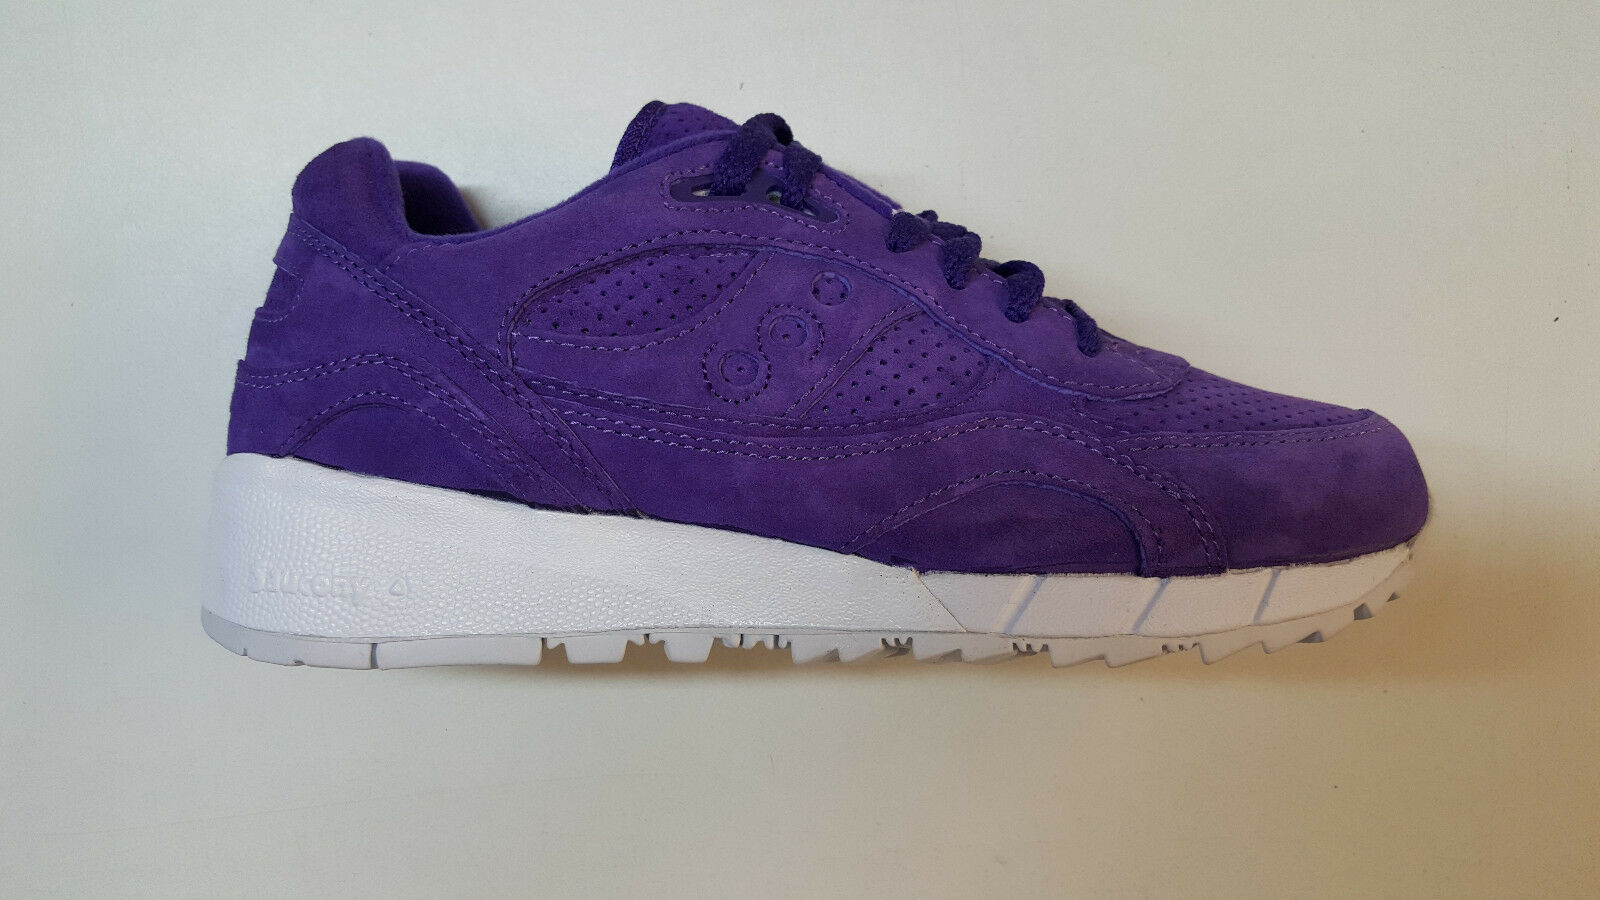 Saucony Shadow 6000 Easter Egg Hunt Purple Runner Retro Shoes S70222-3 1703-80